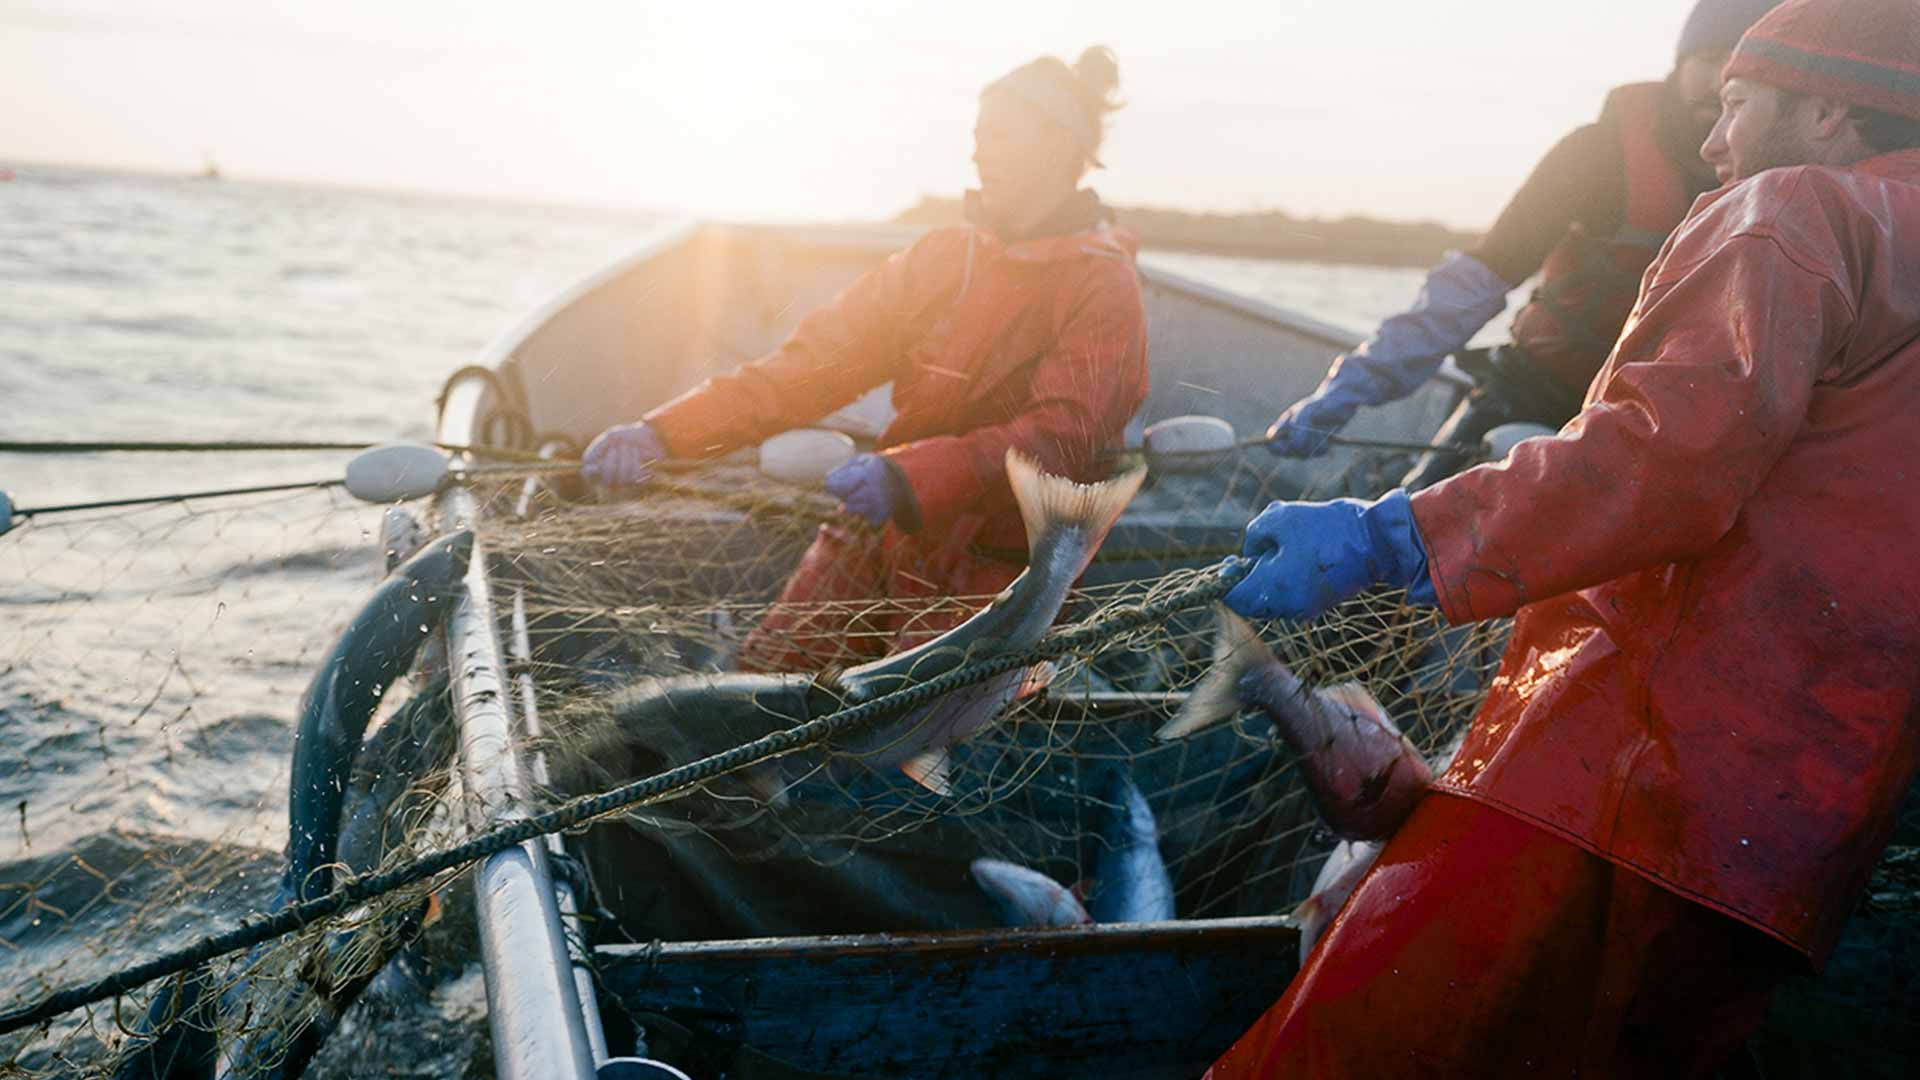 several fishermen haul a net containing large salmon into a small boat